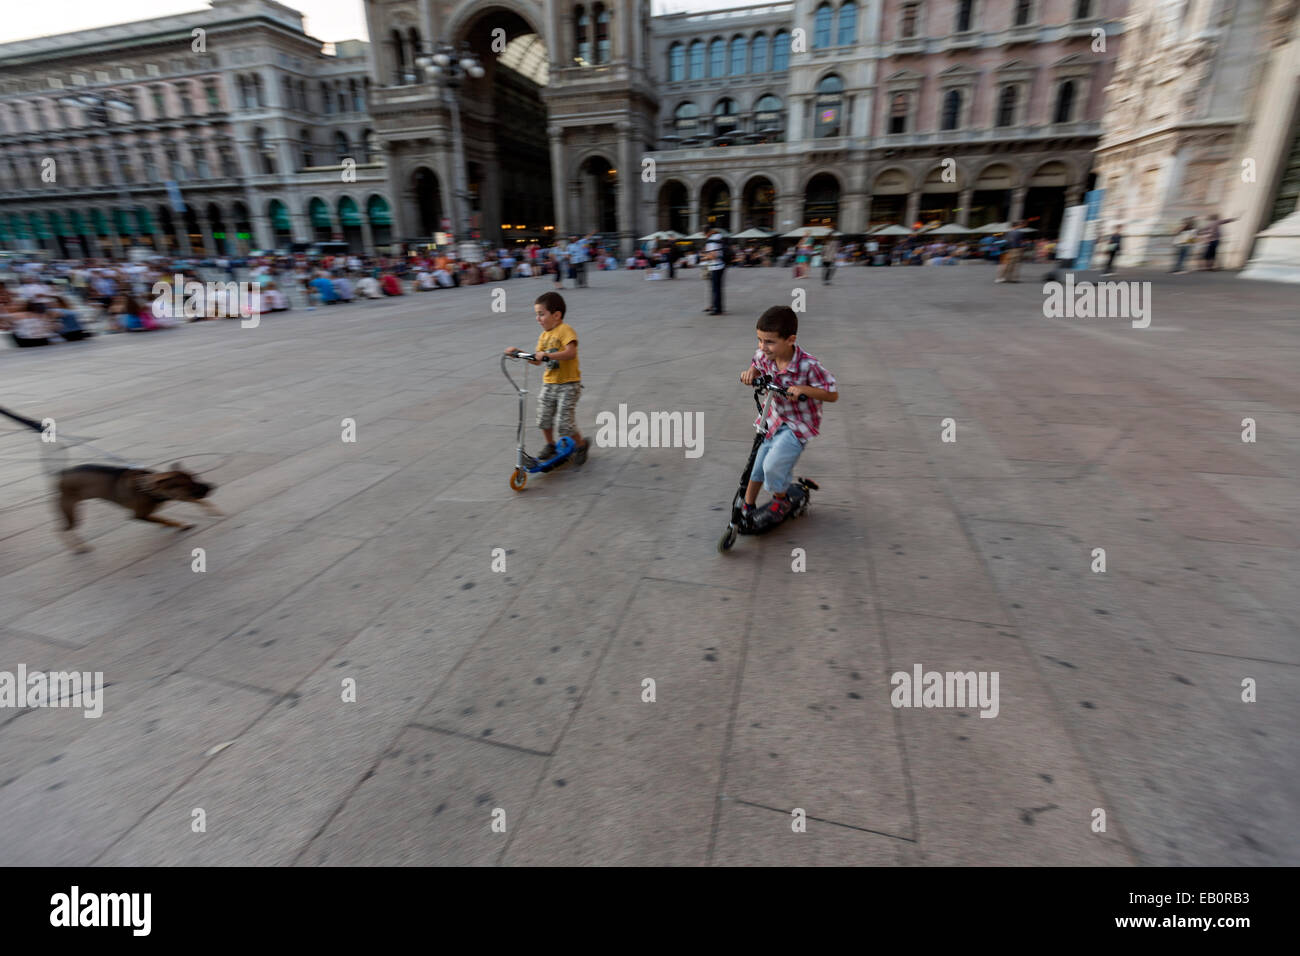 Boys playing with scooters being frightening with a dog in the  Piazza del Duomo  Milan - Stock Image